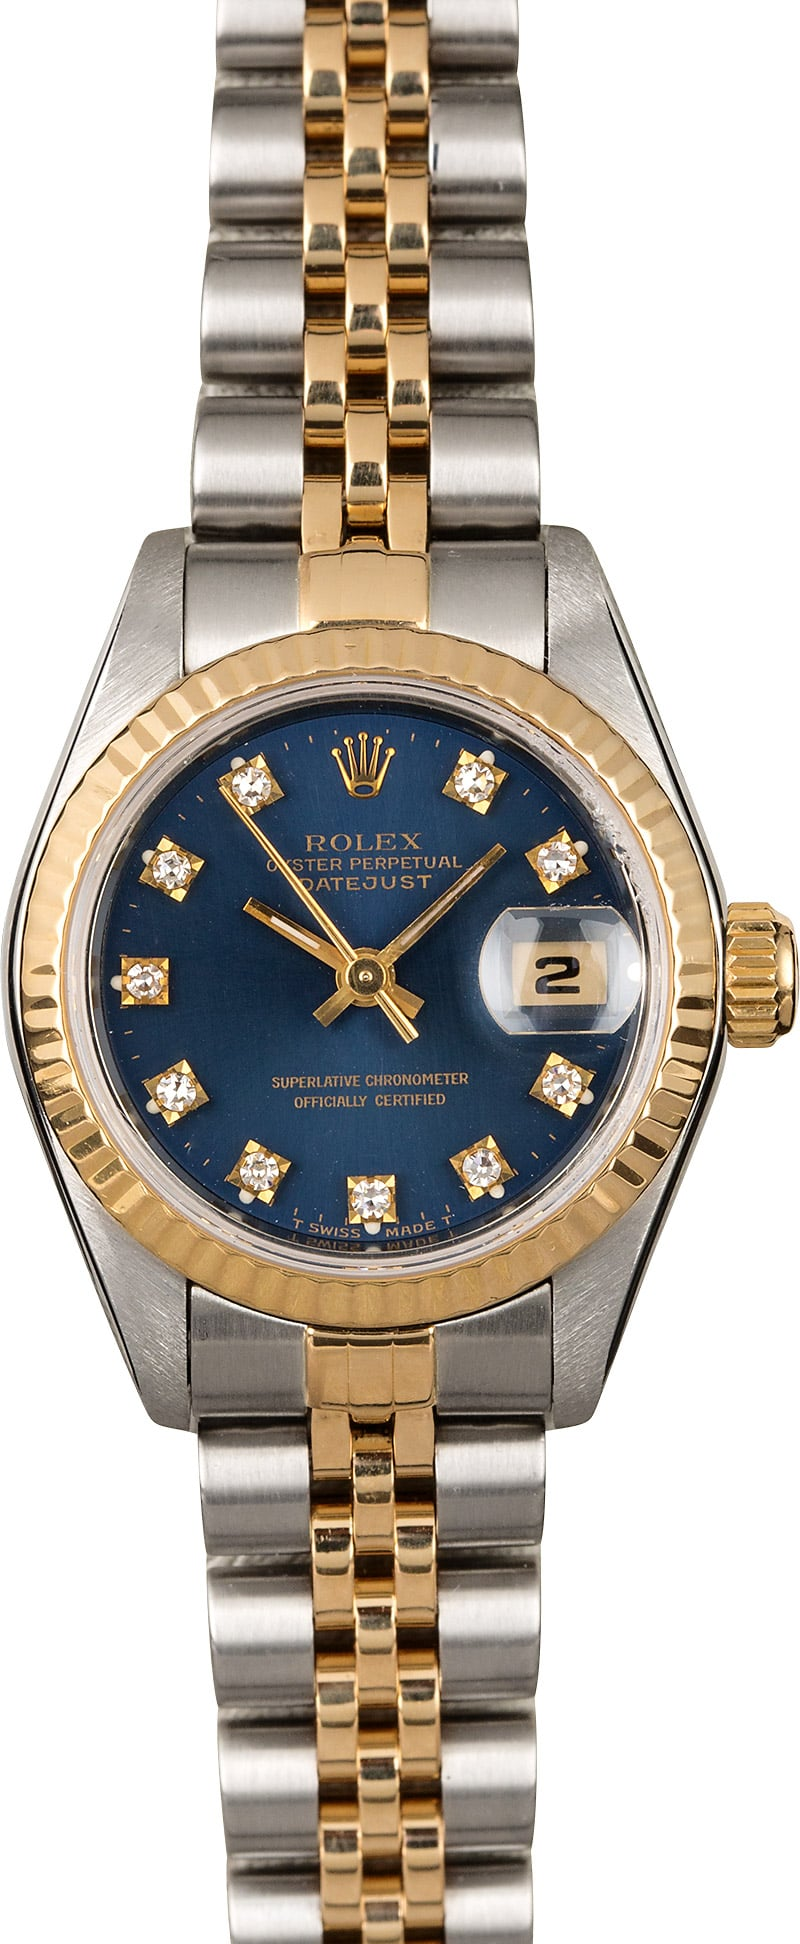 used ladies rolex oyster perpetual datejust model 69173 save up to 50 at bob 39 s on 100 rolex. Black Bedroom Furniture Sets. Home Design Ideas